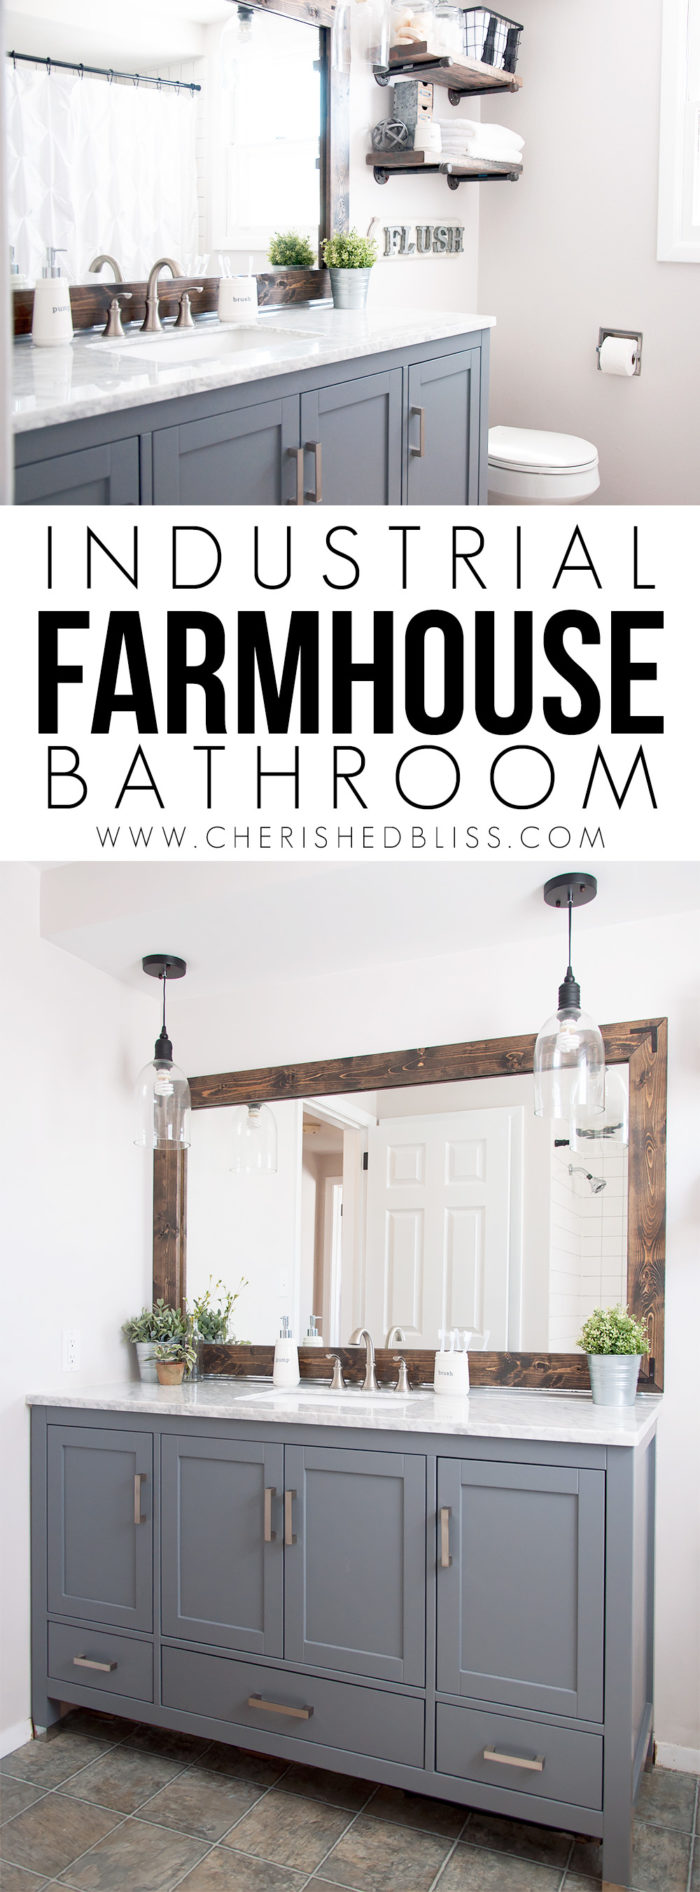 Industrial farmhouse bathroom reveal cherished bliss for Industrial farmhouse exterior